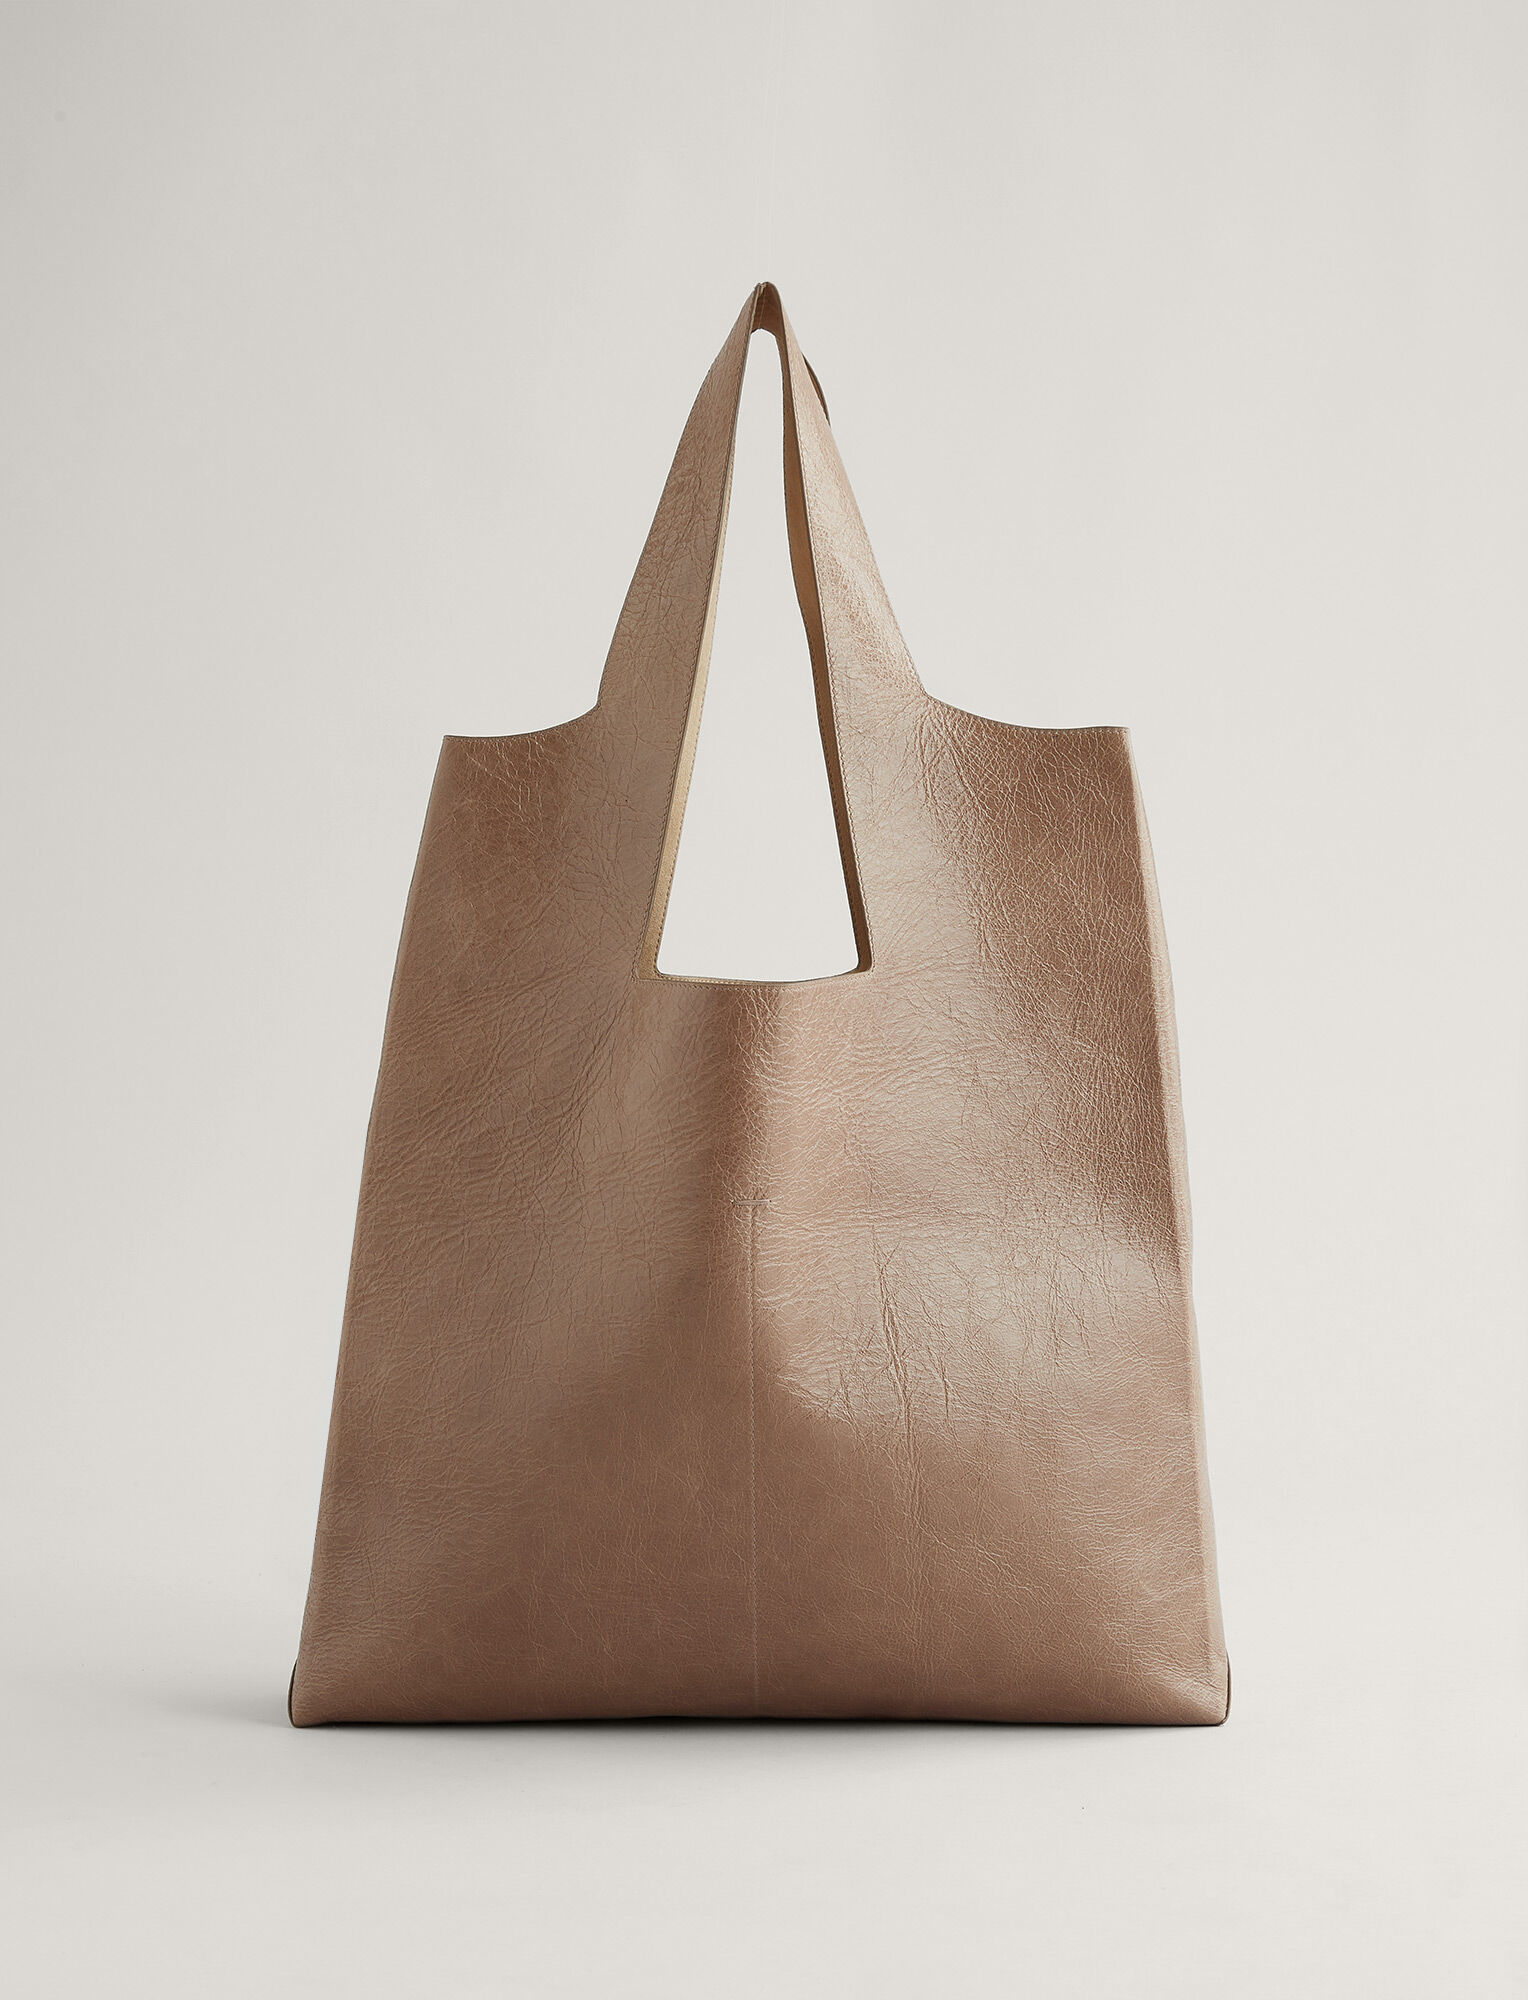 Joseph, Westbourne Leather Bag, in TAUPE